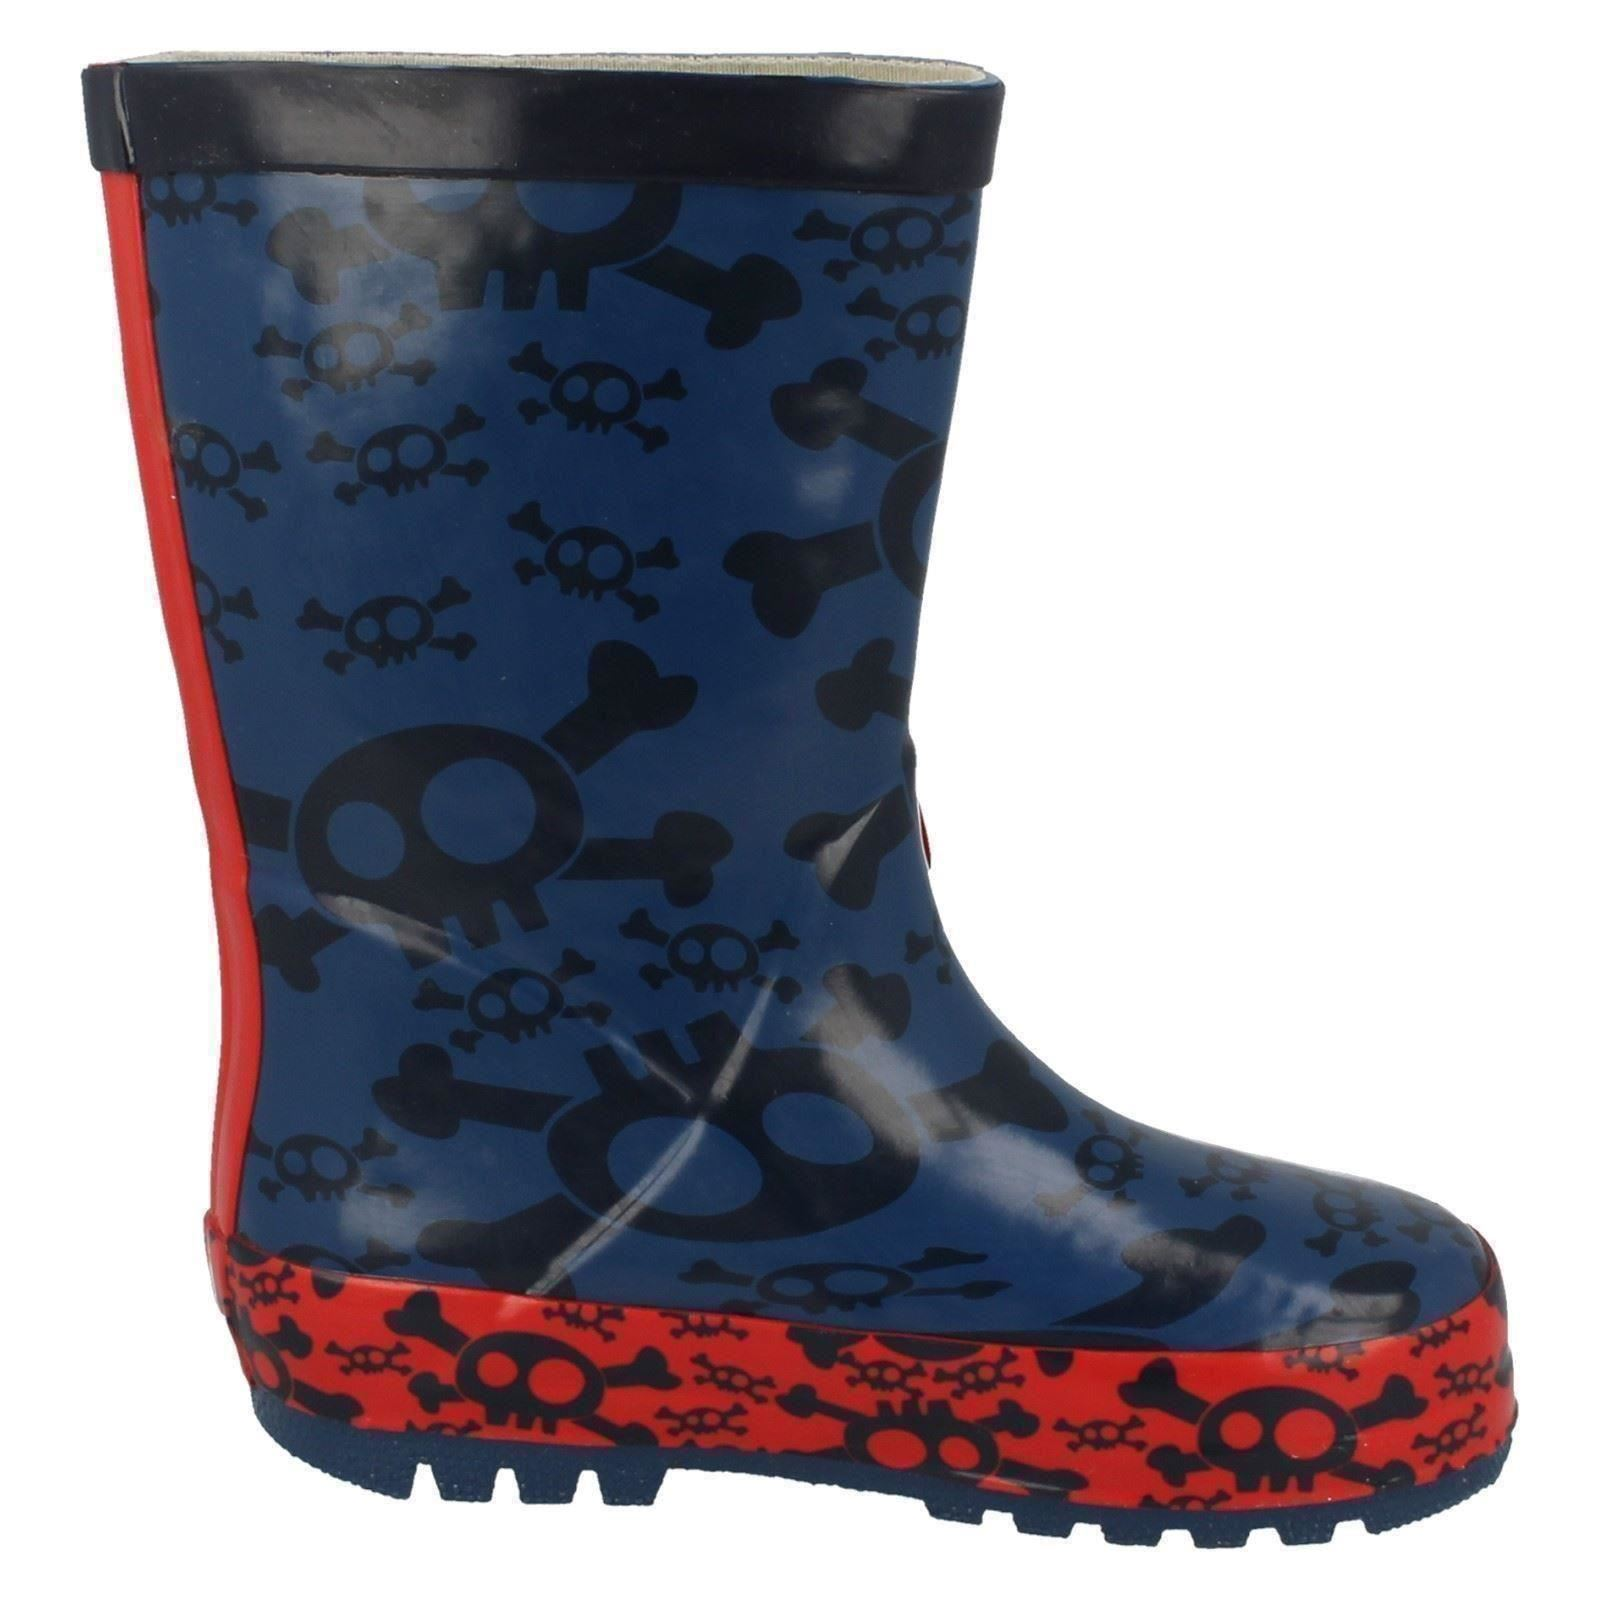 Chicos Wellingtons Pirata DISNEY Jake Y Los Neverland